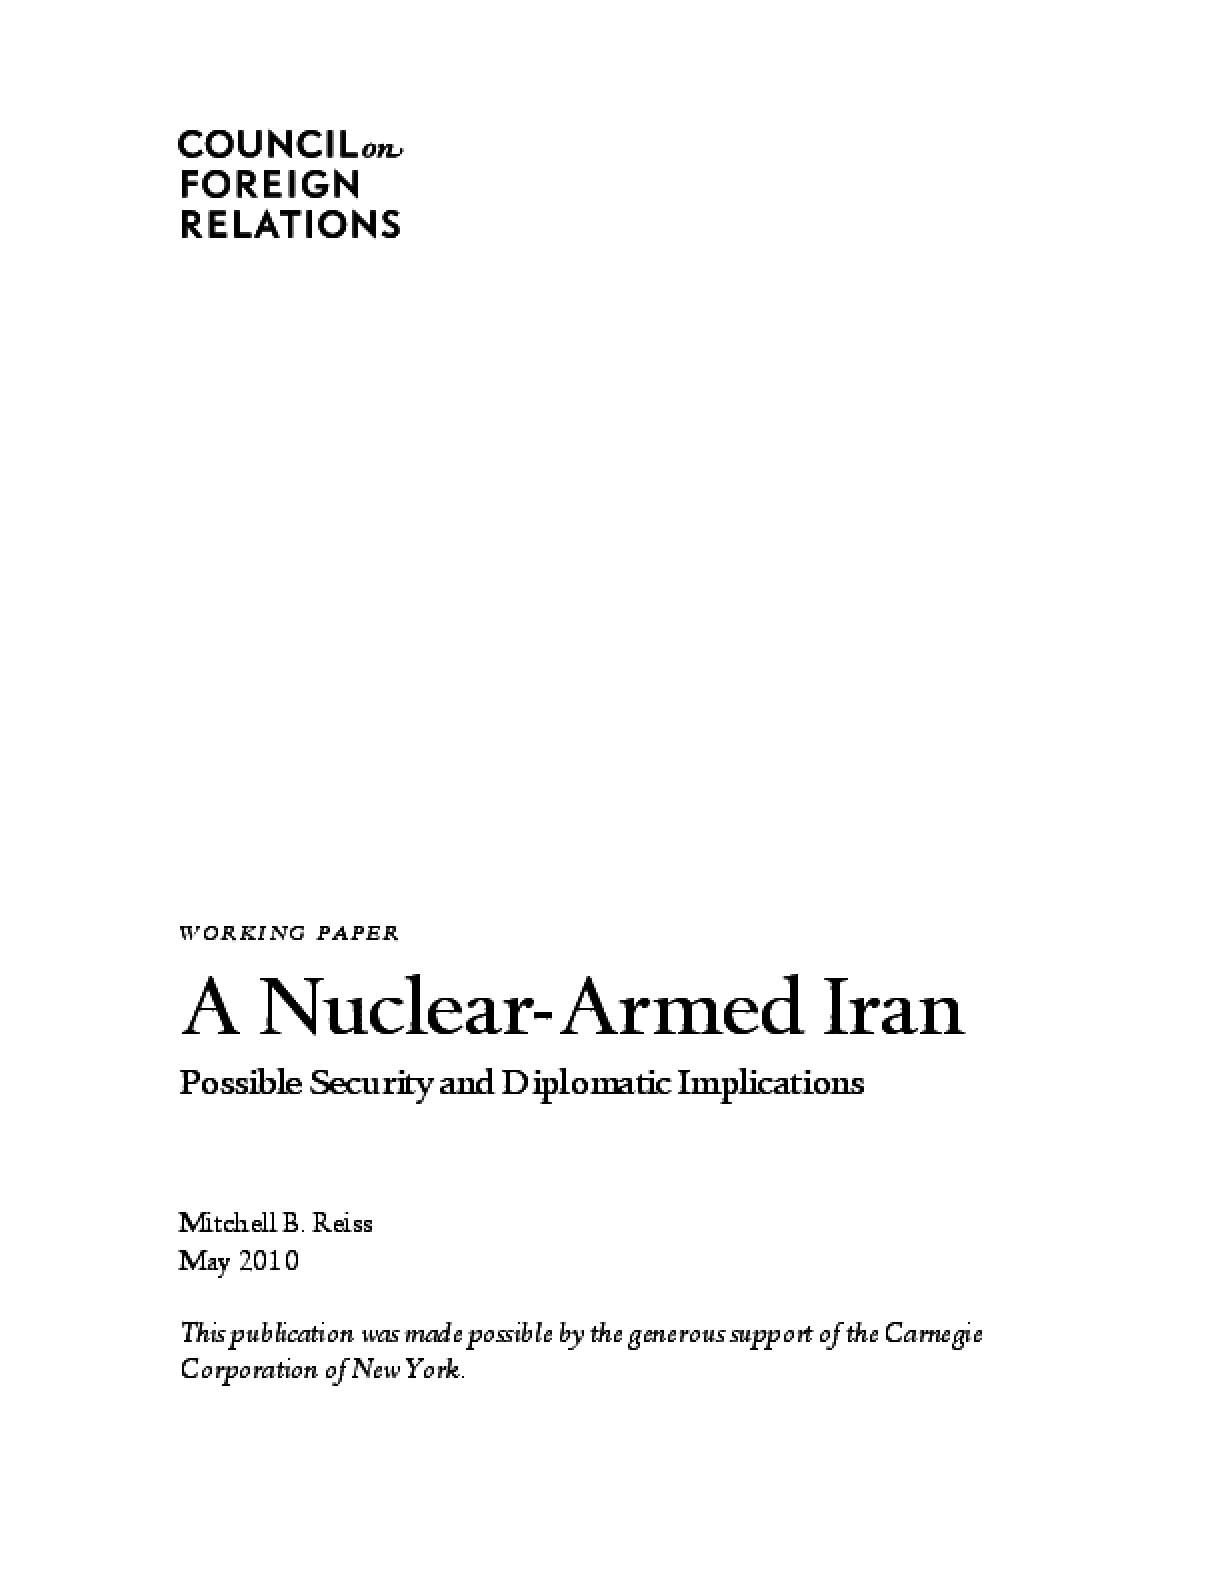 A Nuclear-Armed Iran: Possible Security and Diplomatic Implications